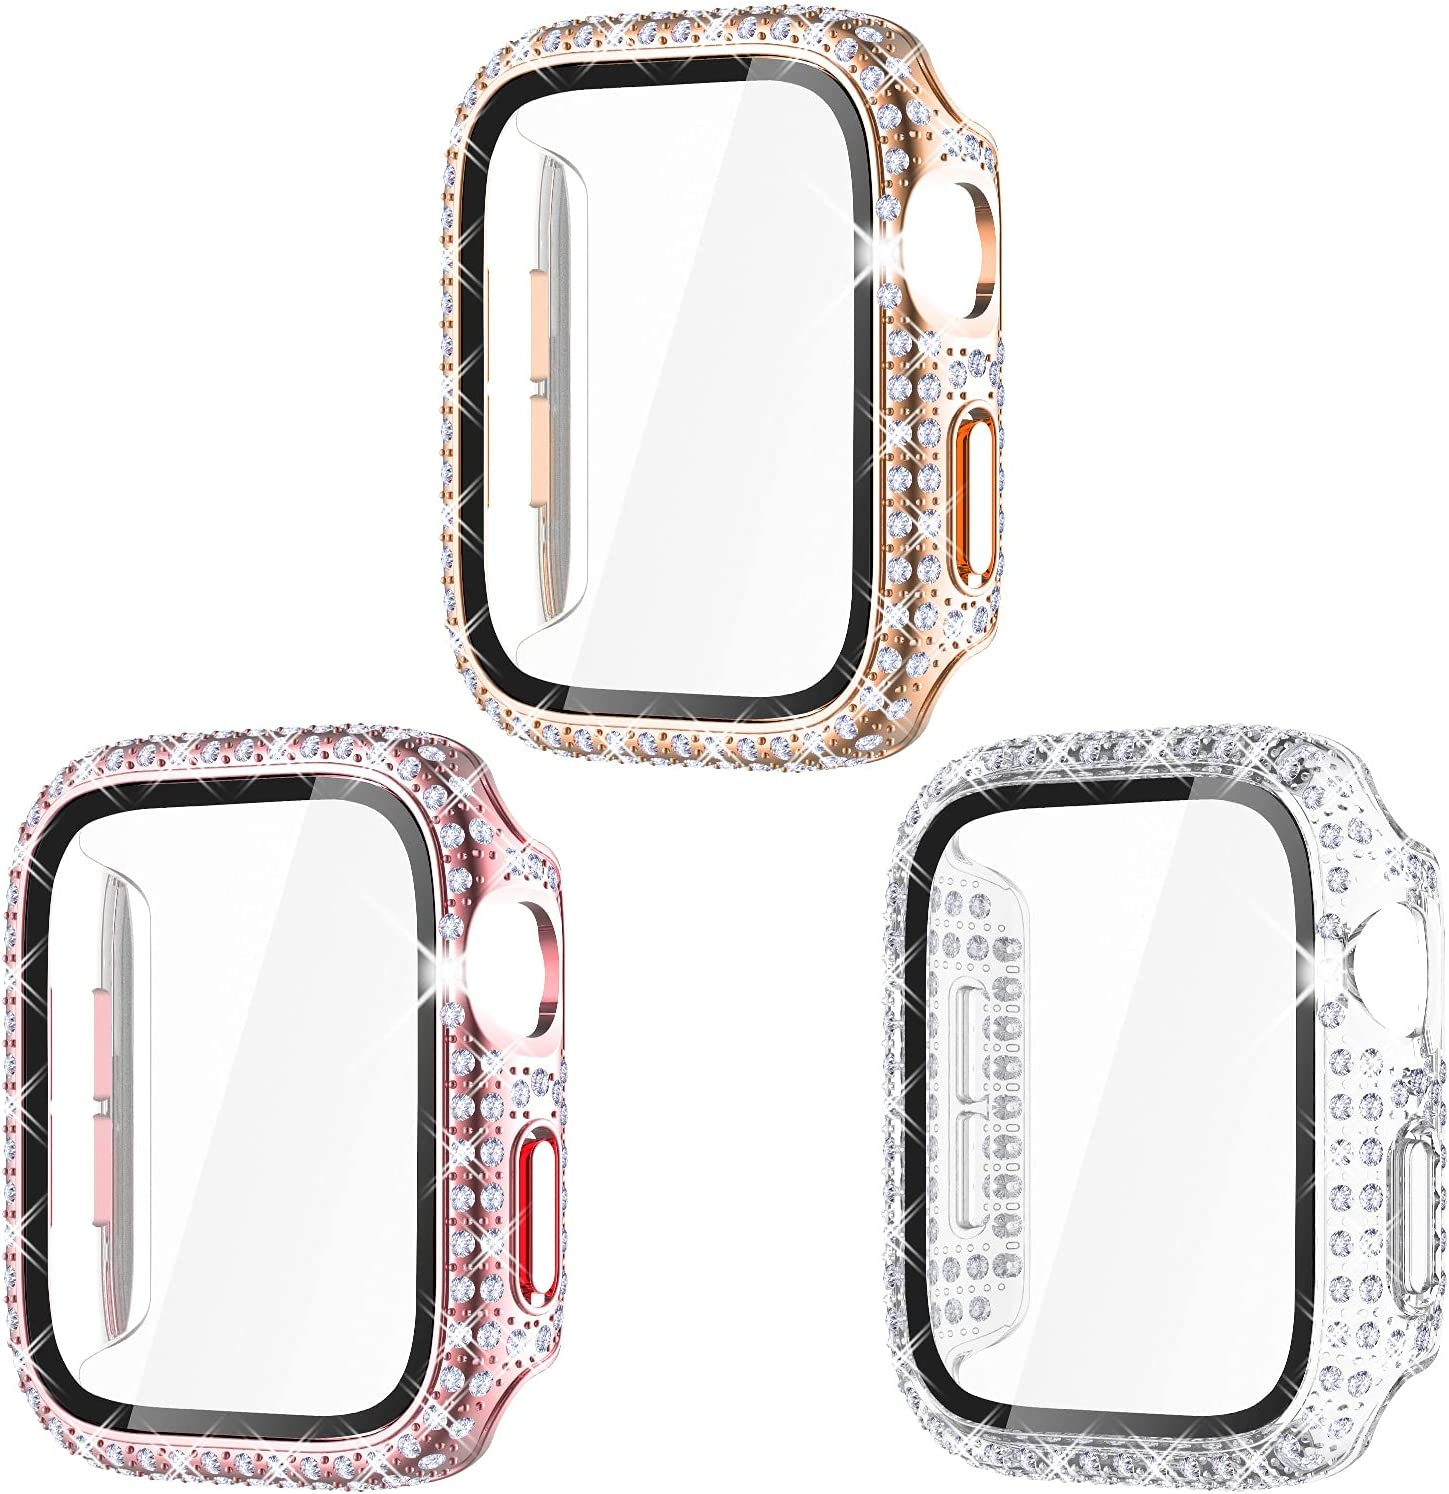 Surace Compatible with Apple Watch Case 40mm with Screen Protector for Apple Watch Series 6/5/4/3/2/1, Bling Case Crystal Tempered Glass Protective Cover 38mm 40mm 42mm 44mm, Rose Gold/Pink/Clear